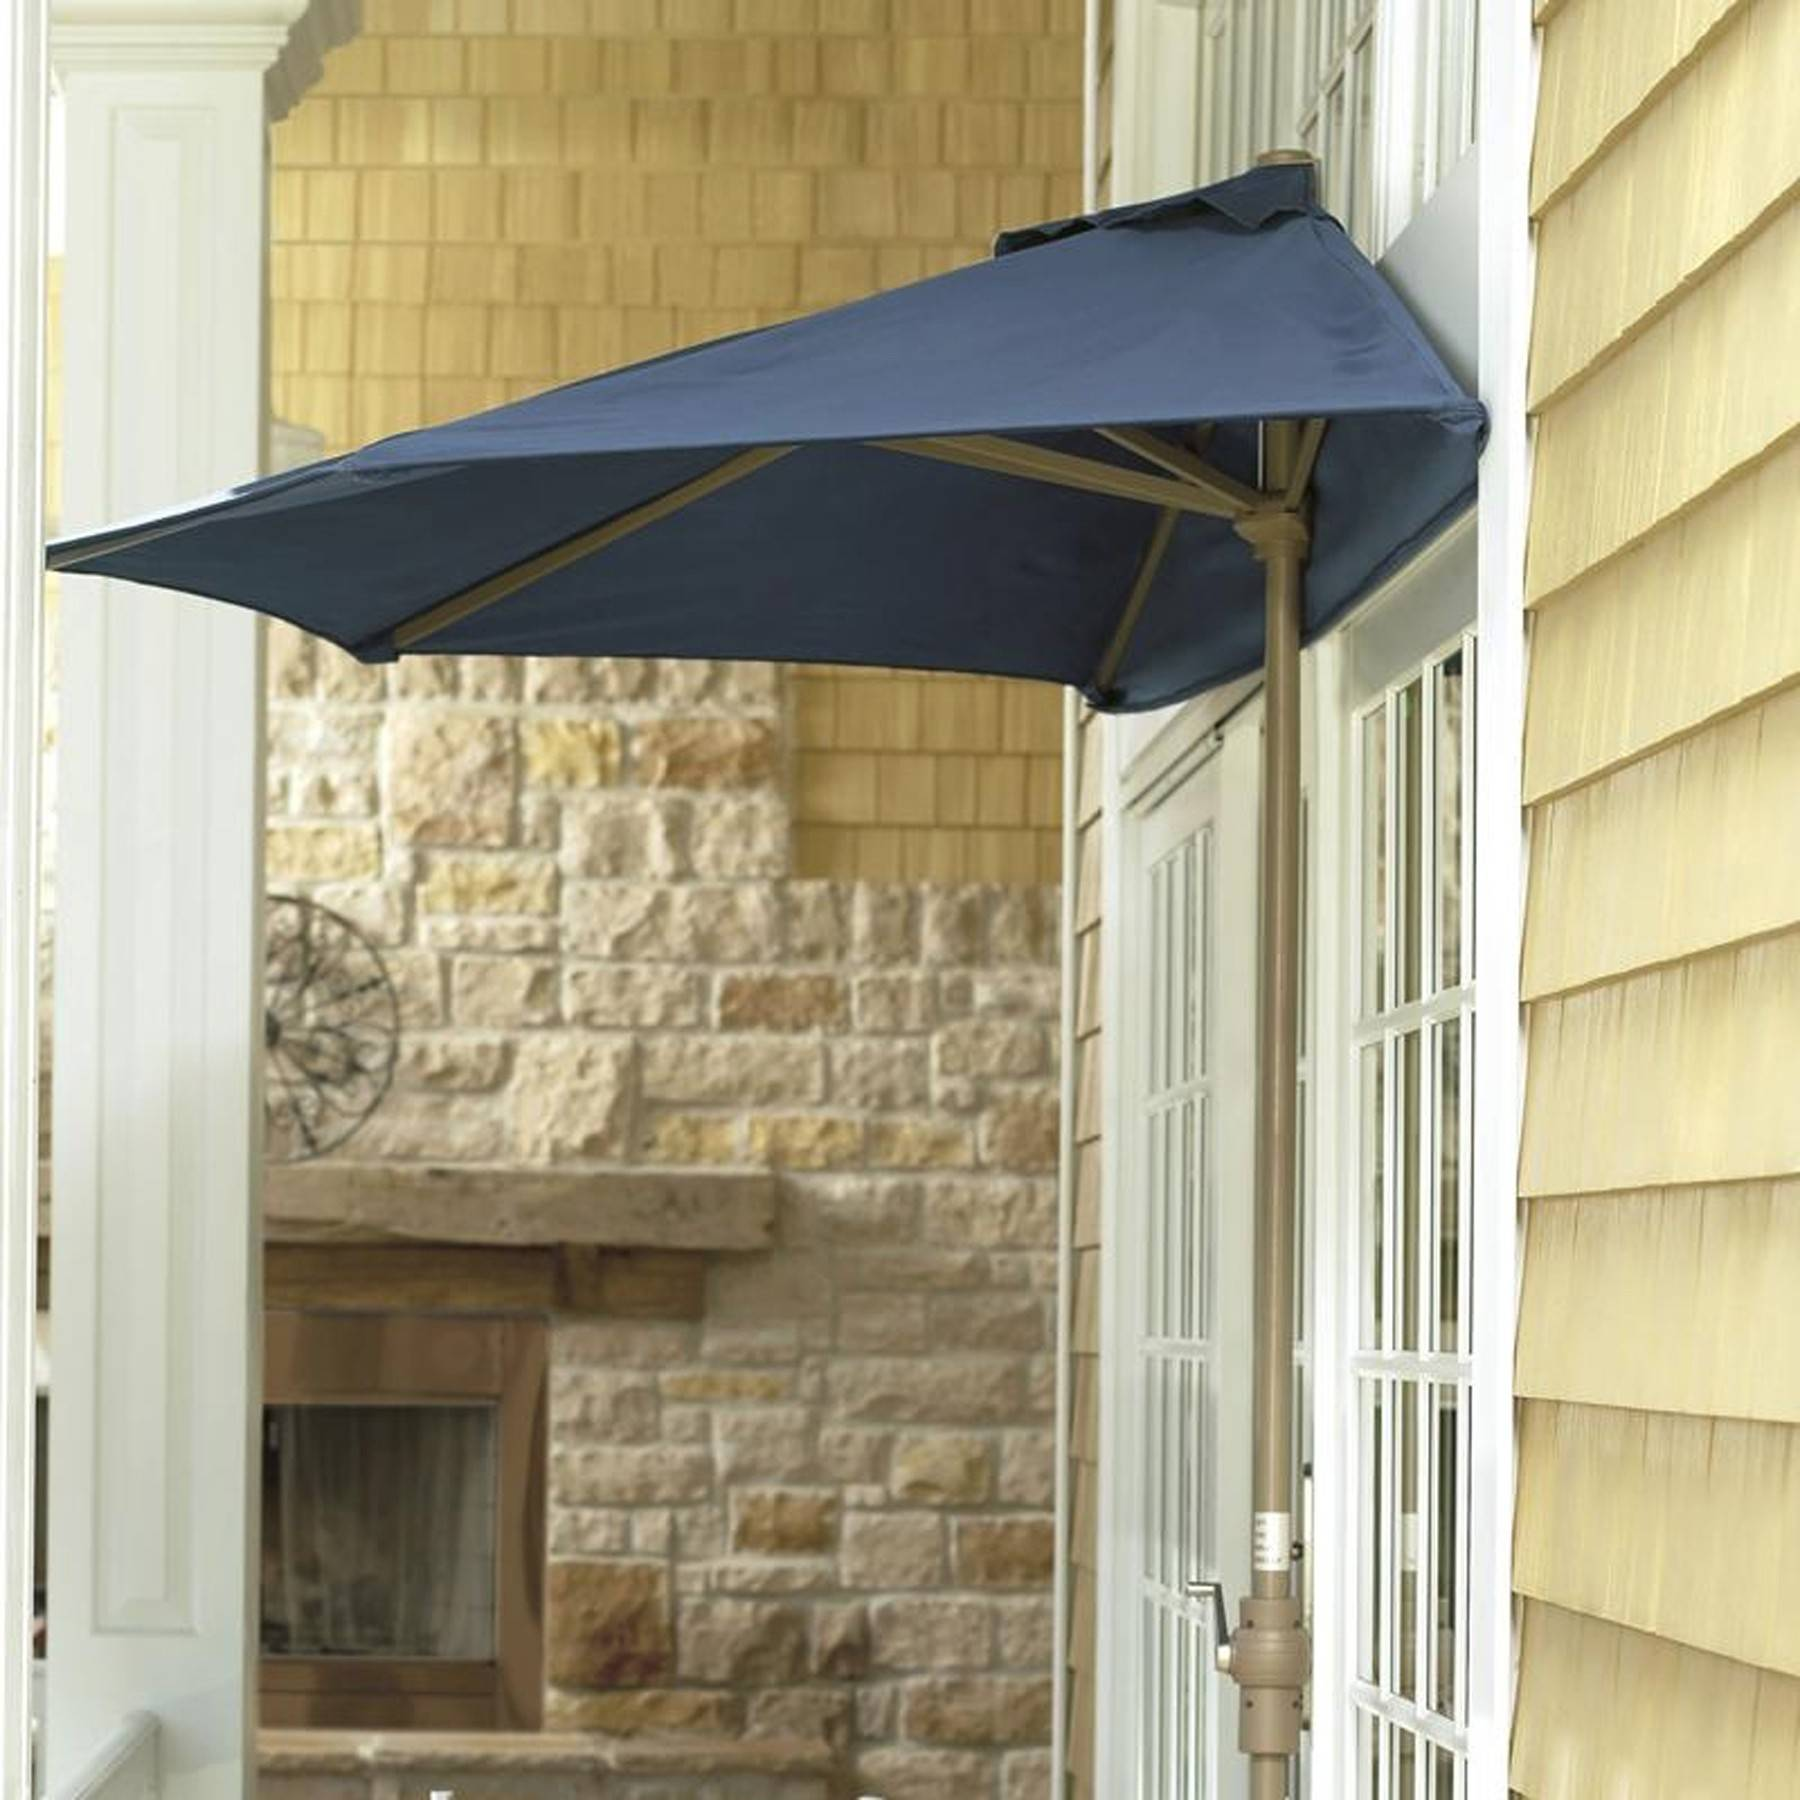 Shading is always important. In super-tight spaces, utilize the half umbrella style that stands right next to an exterior wall of your house.